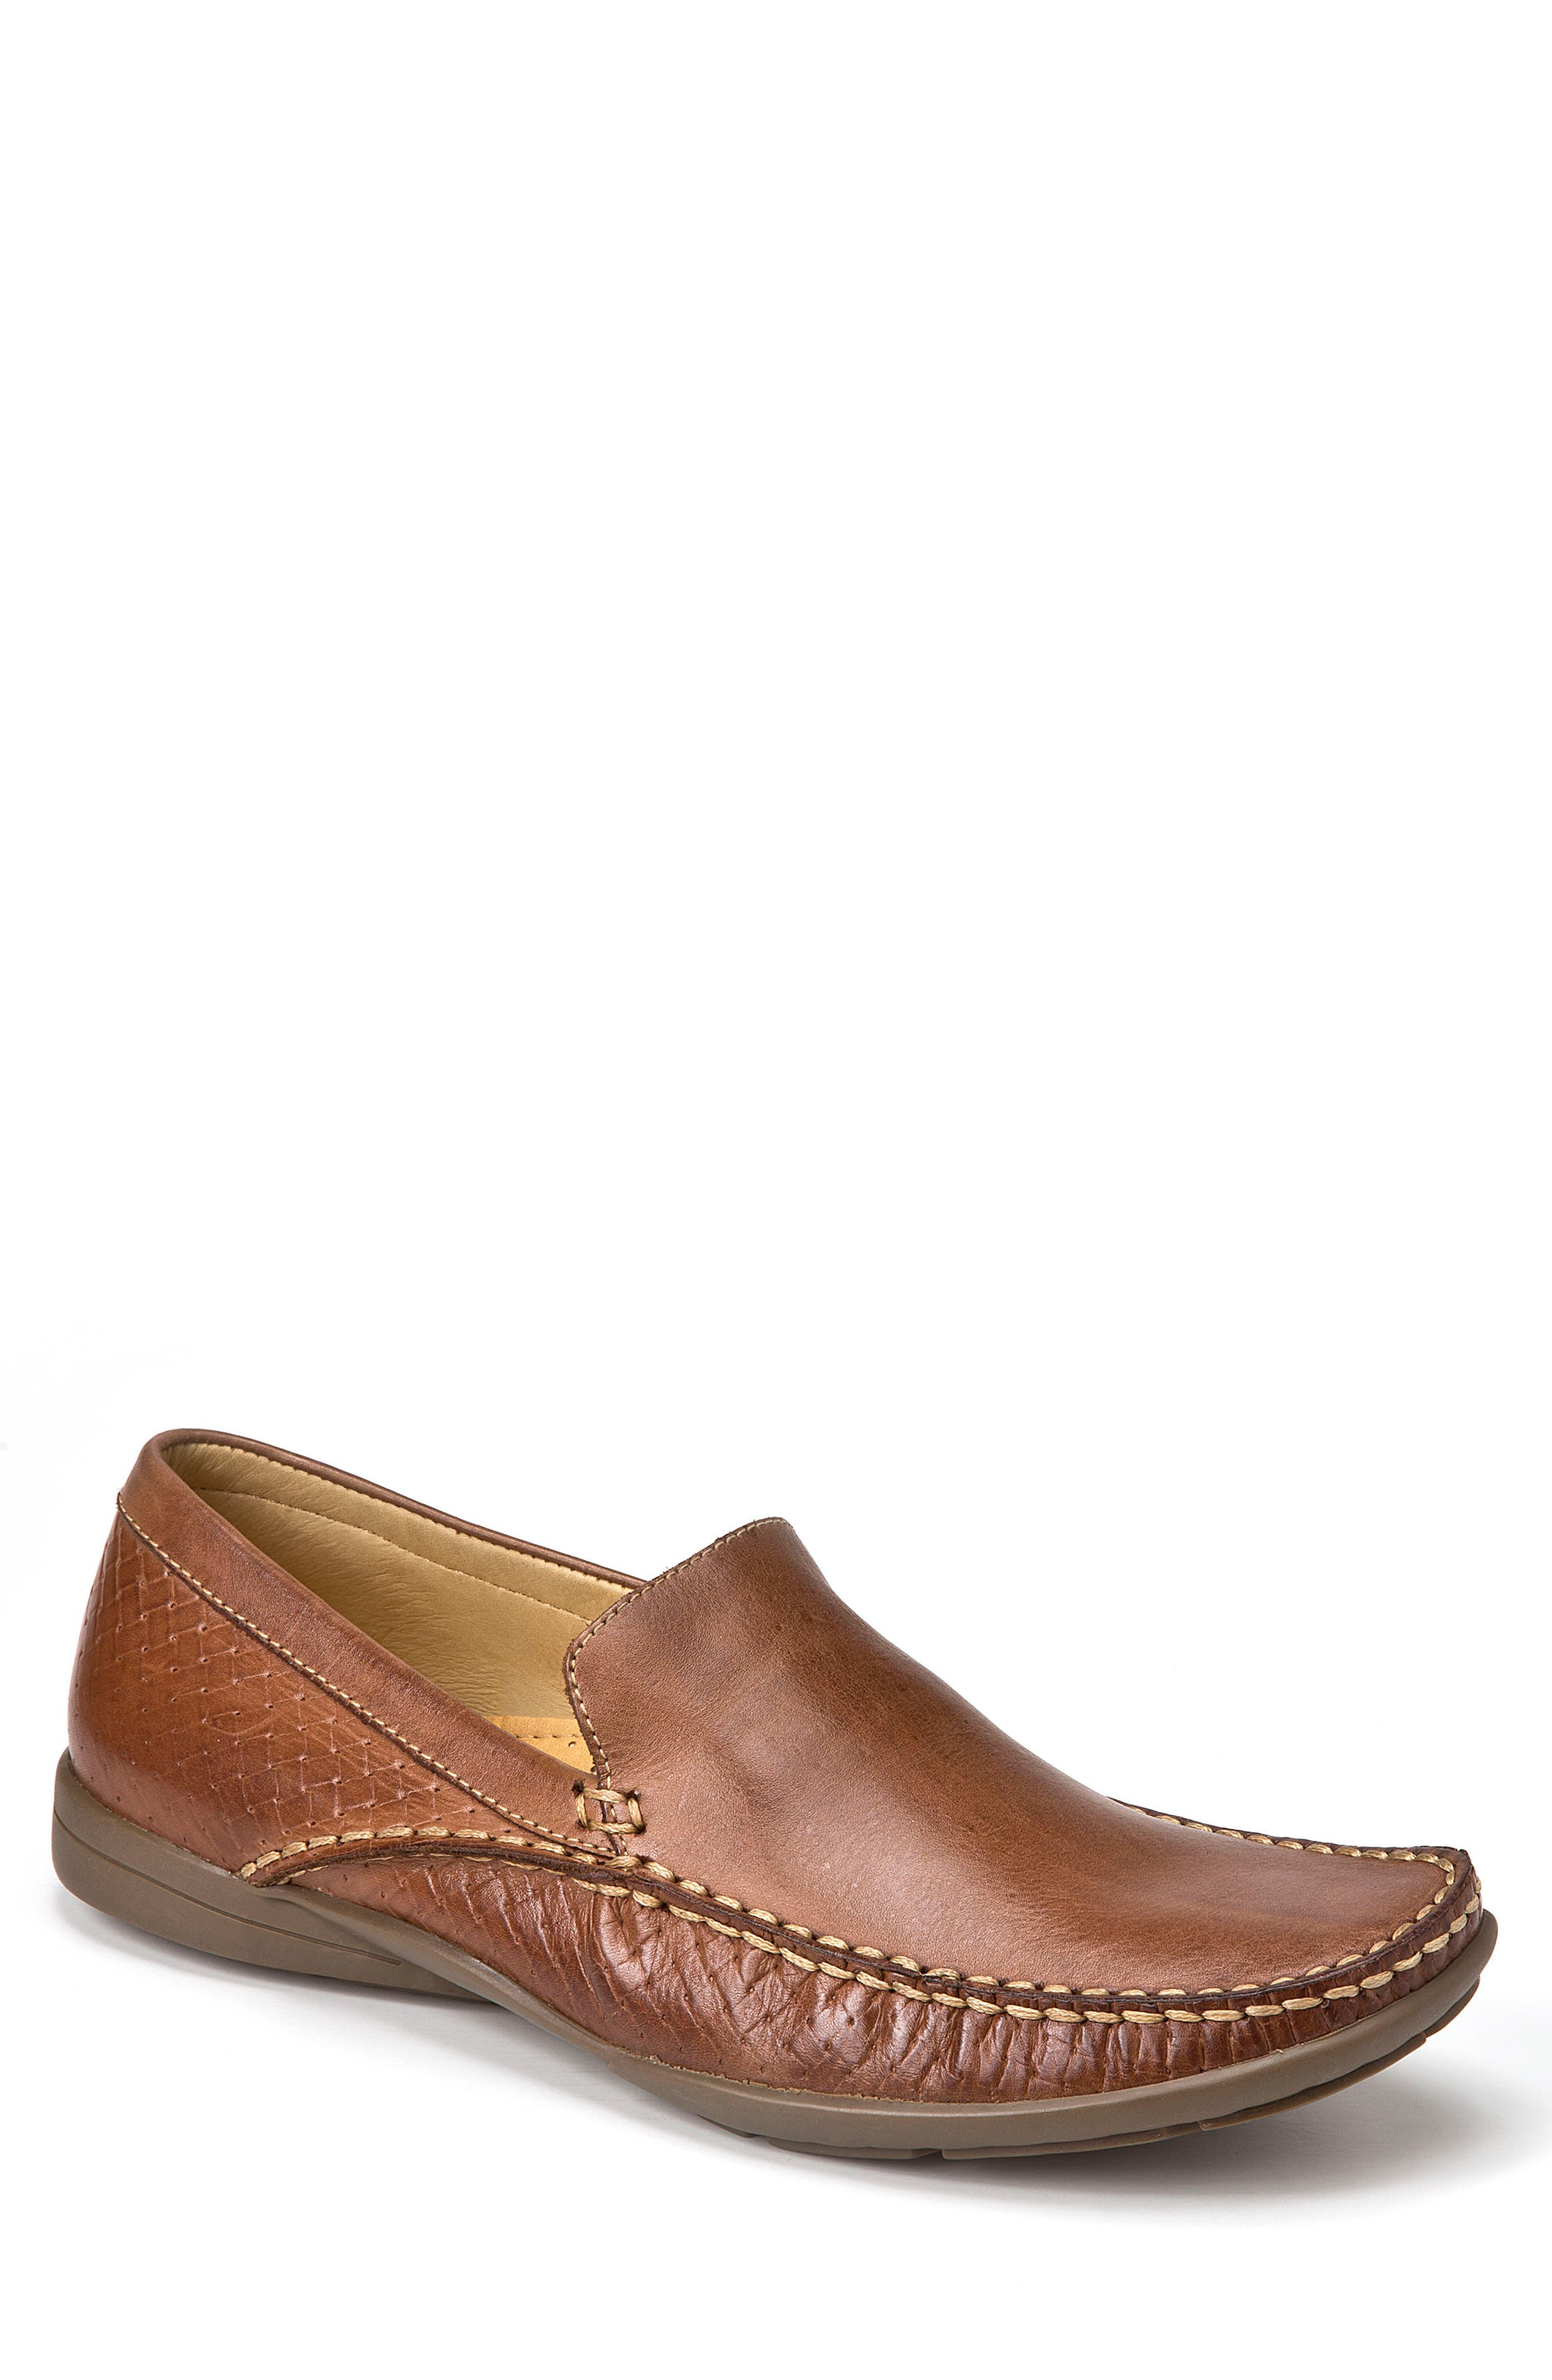 Dudley Moc Toe Loafer,                             Main thumbnail 1, color,                             Tan Leather